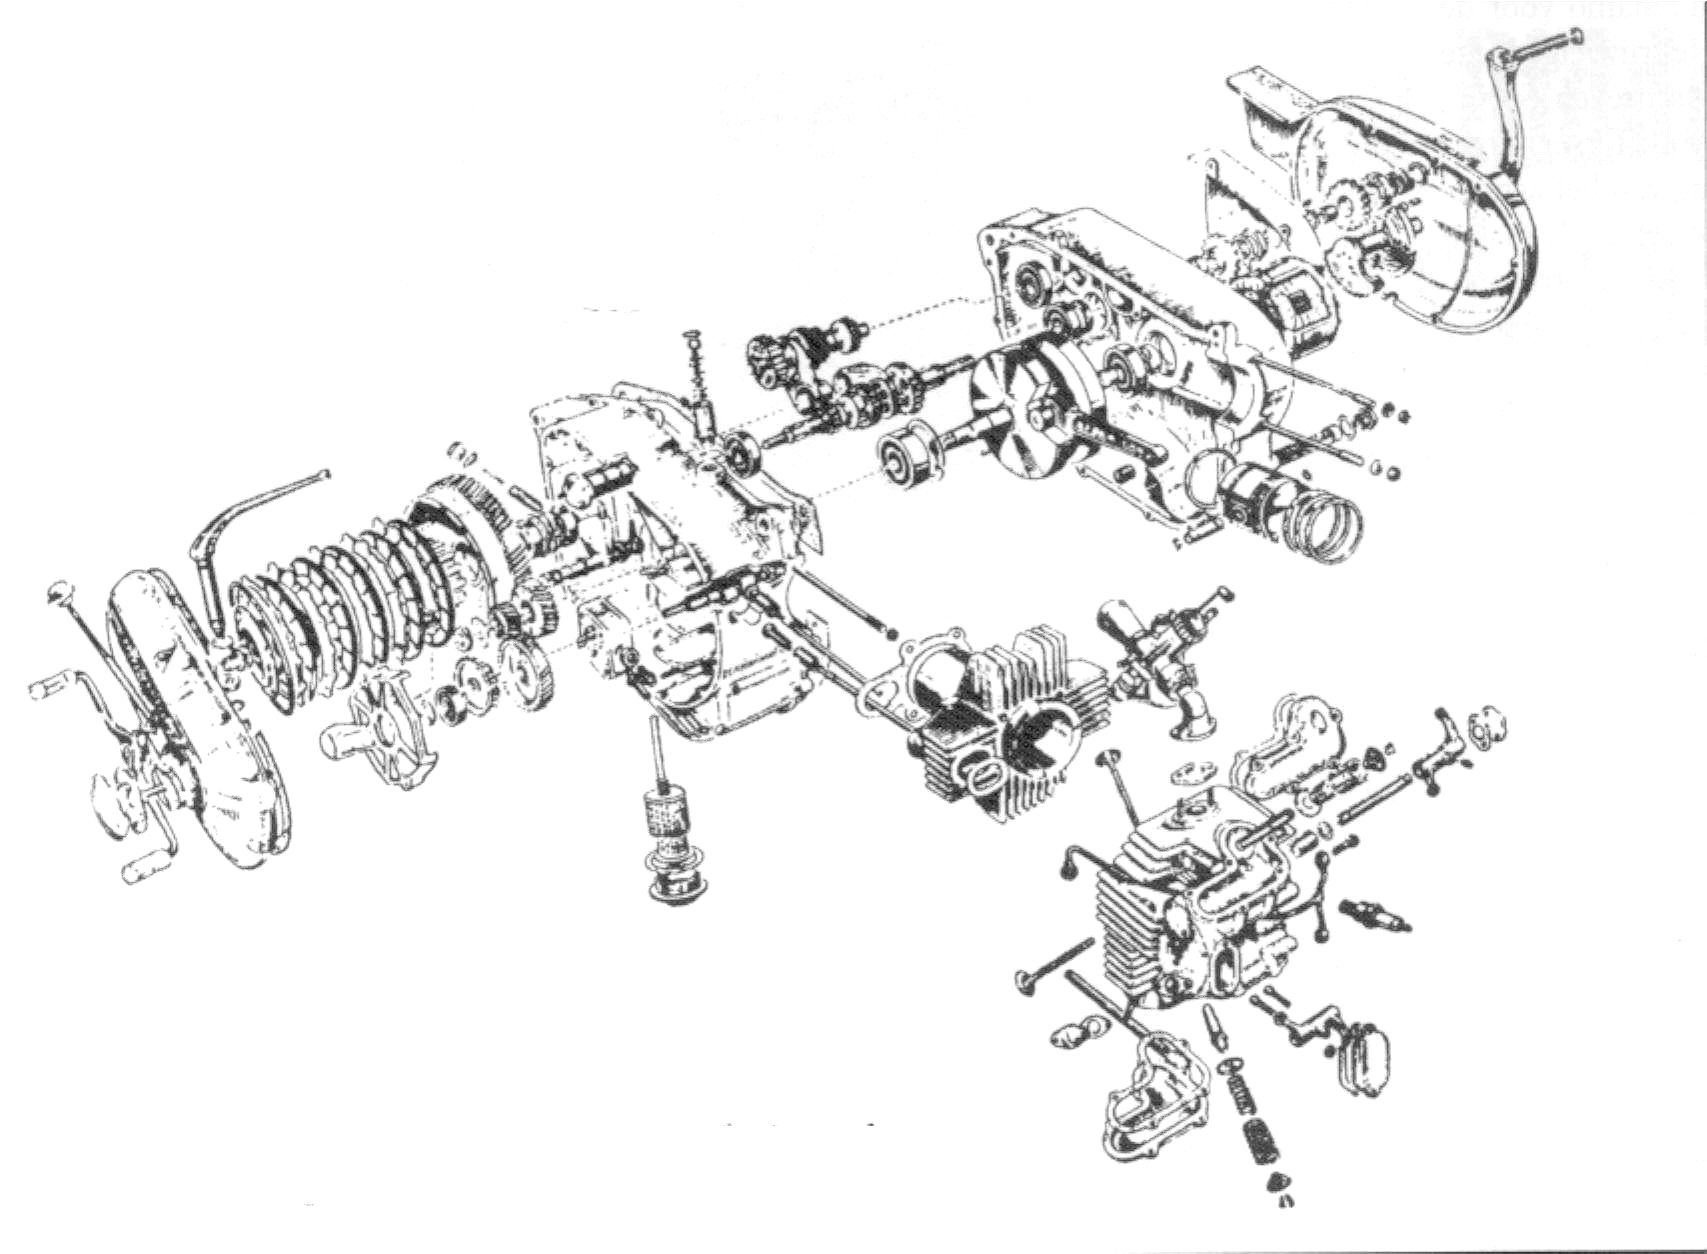 diagram of p.8 mercury motor file exploded view02 jpg  file exploded view02 jpg